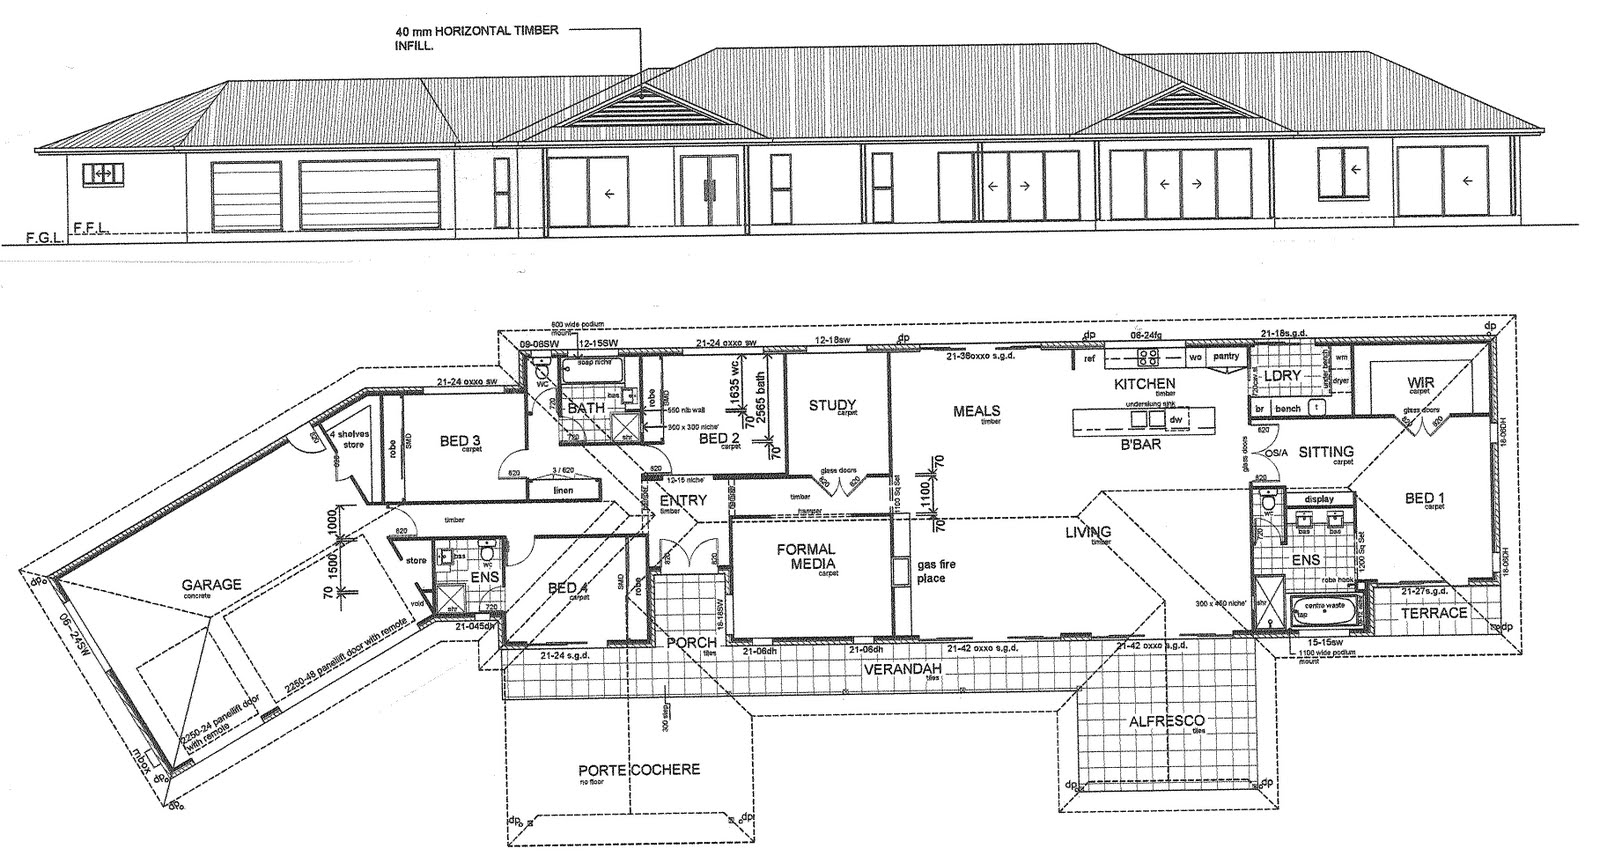 samford valley house construction plans ForHouse Construction Plans